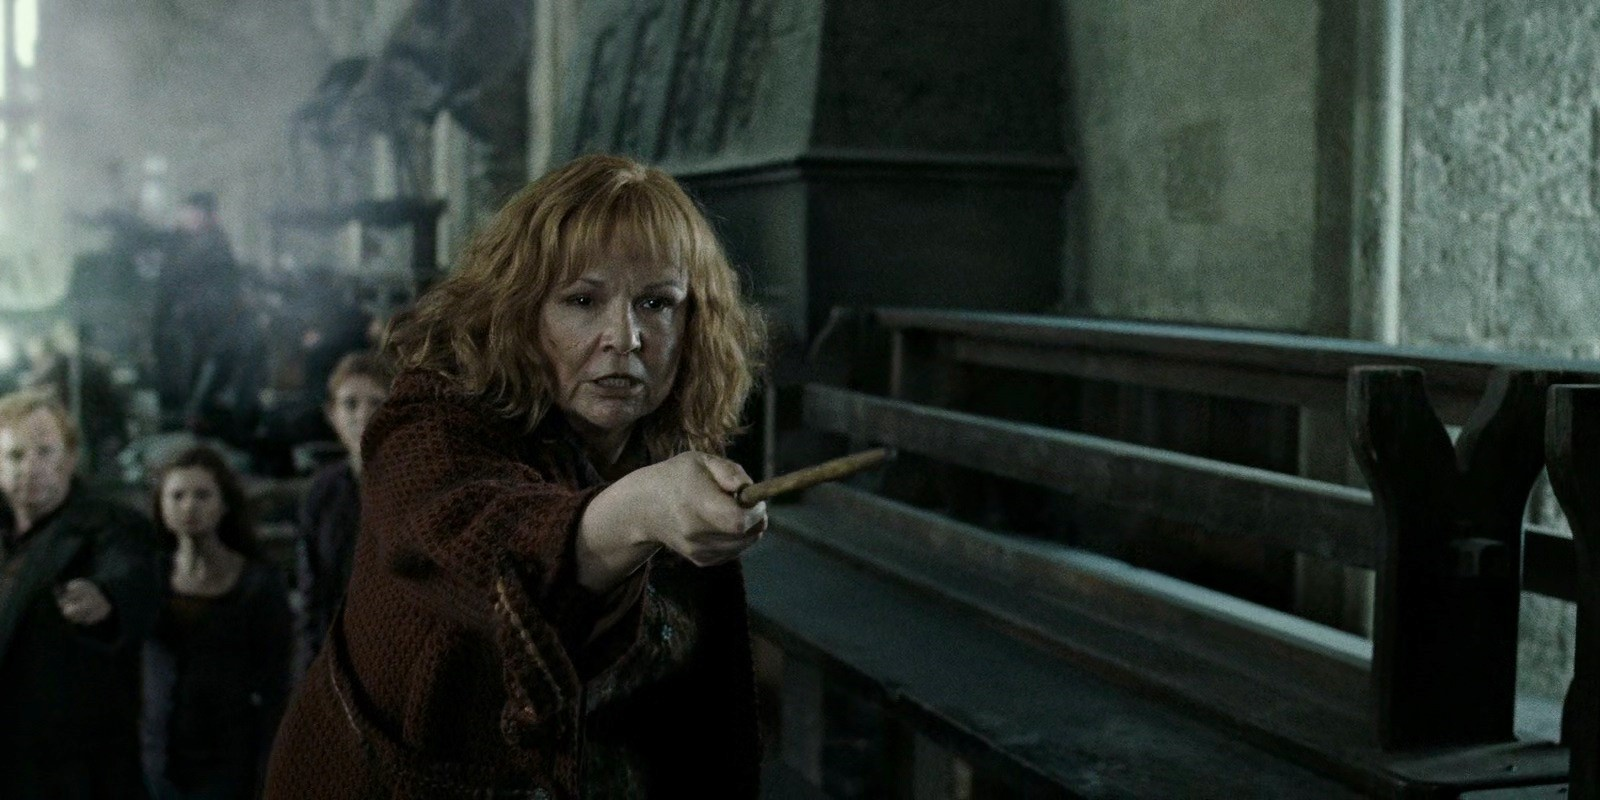 5. Molly Weasley Vs. Bellatrix Lestrange - Harry Potter And The Deathly Hallows - Part 2 Cropped